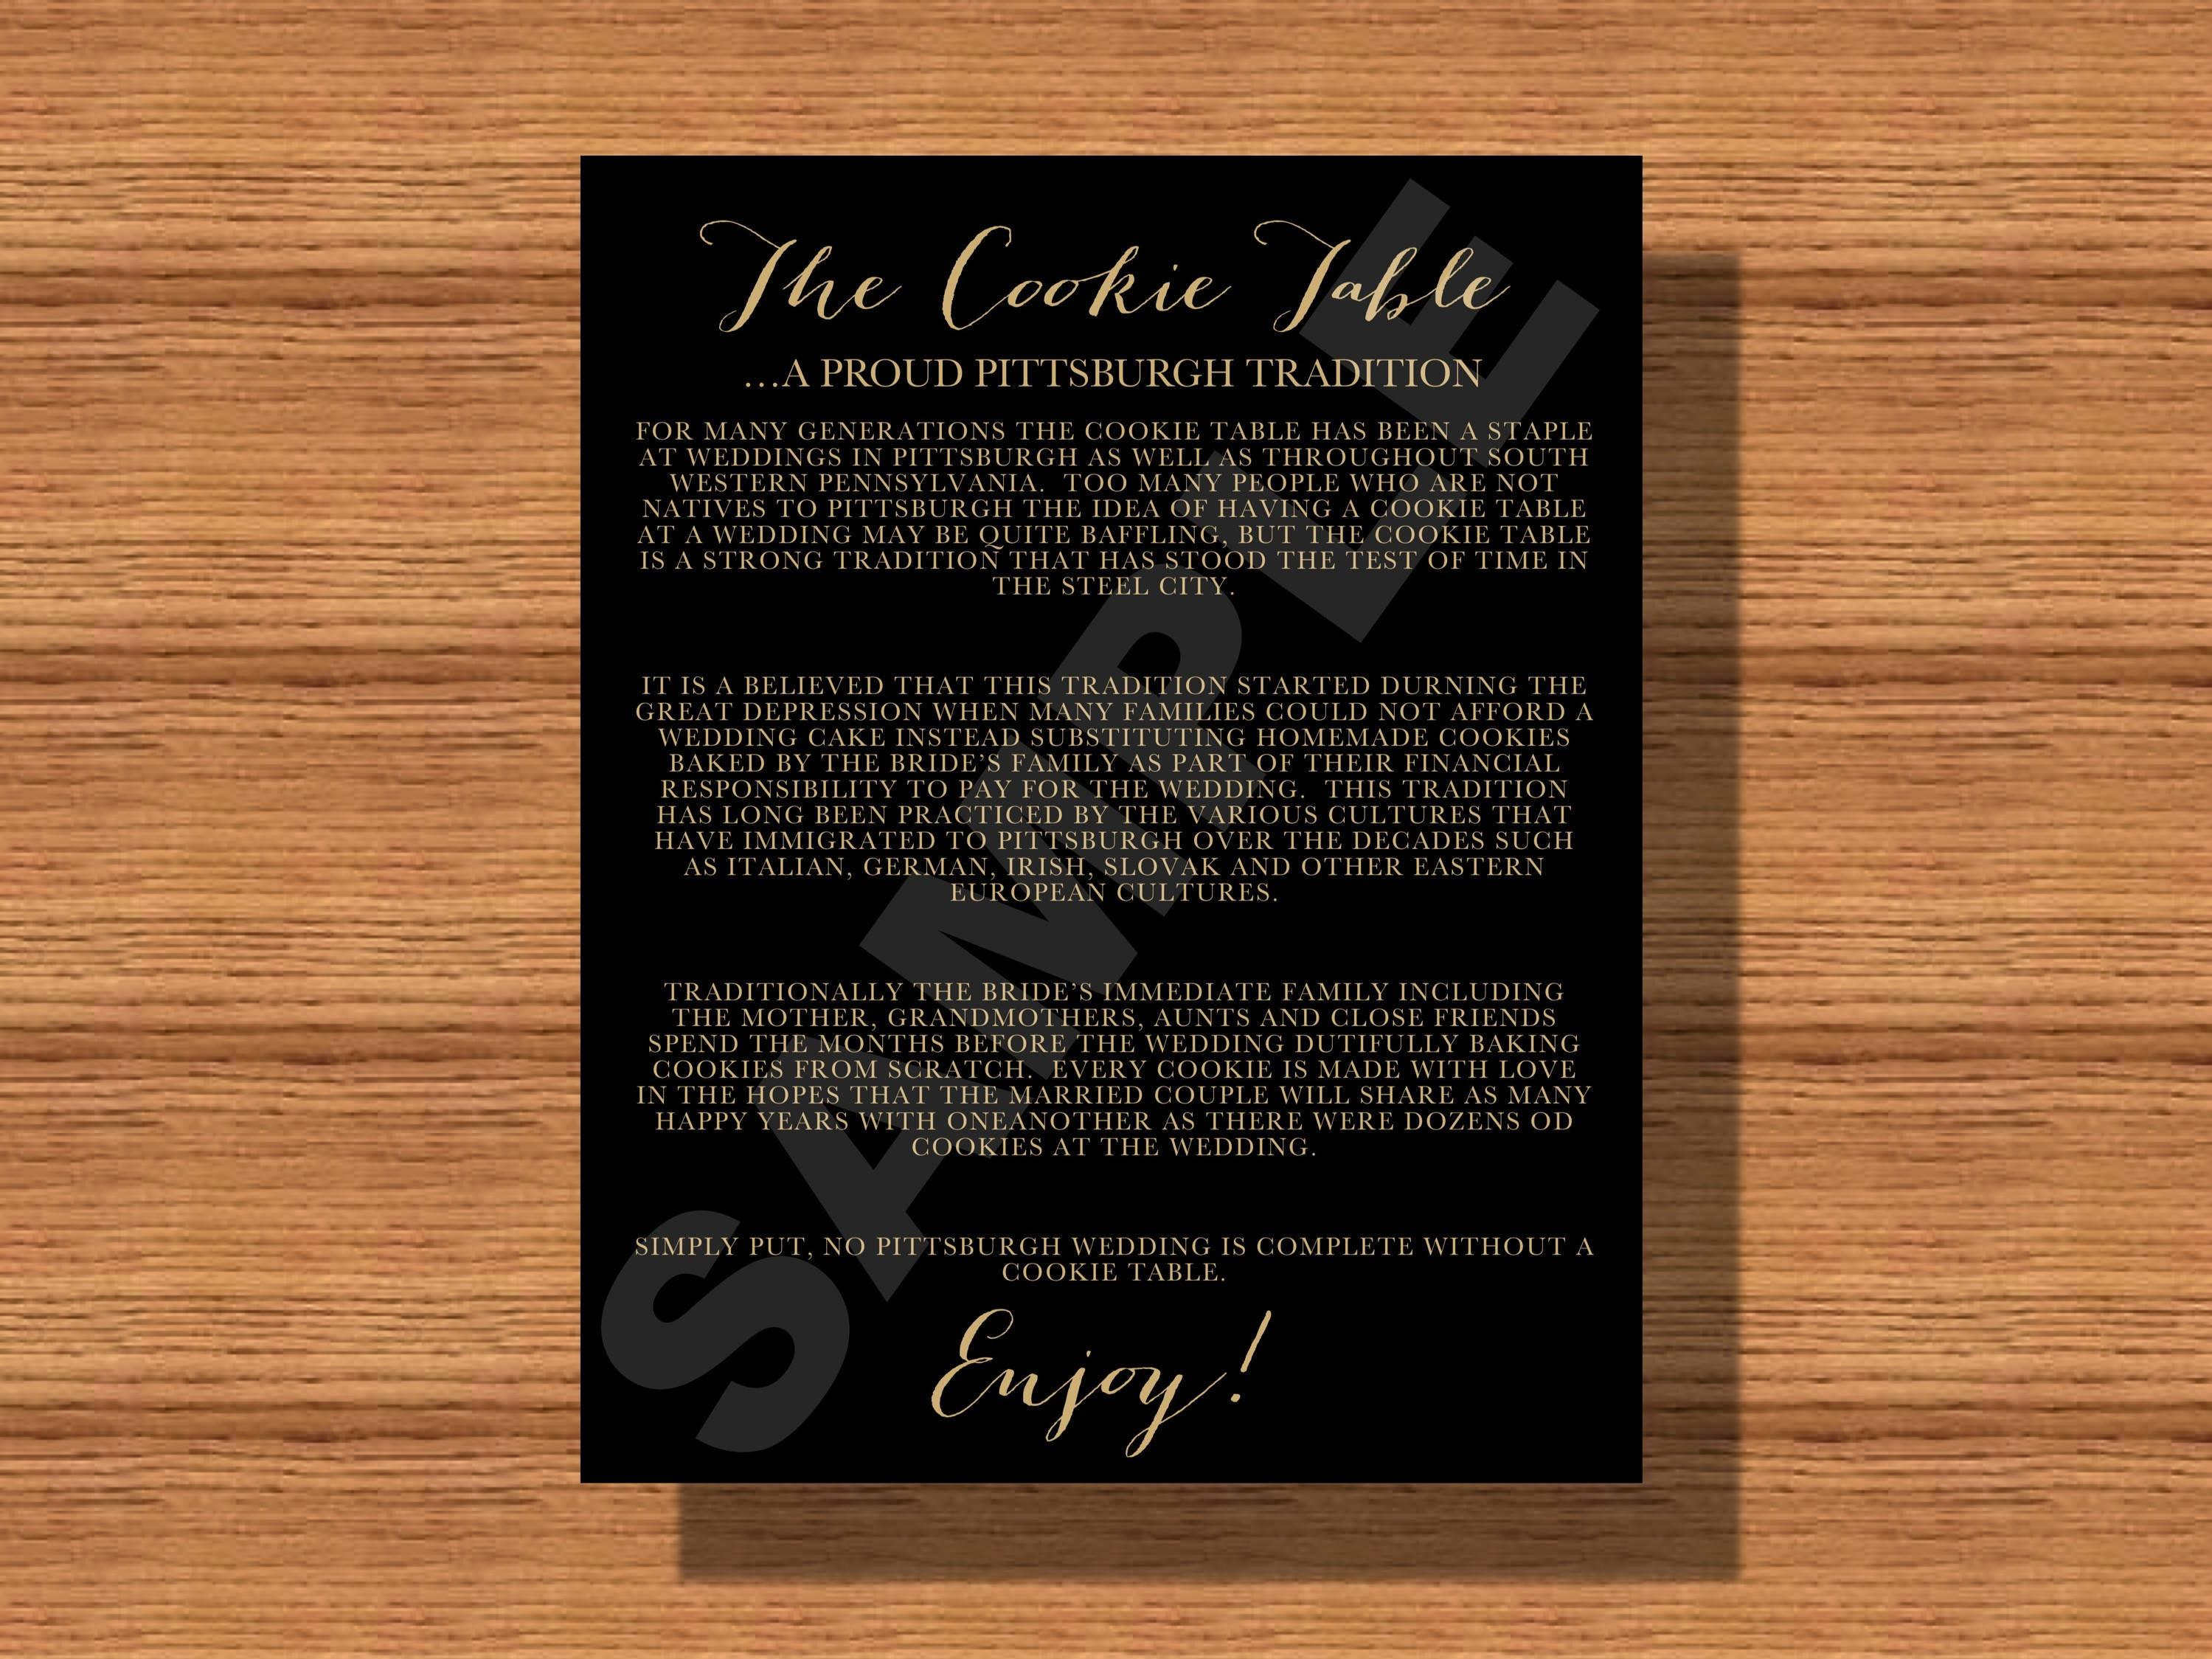 Dedication Invitation Card Template